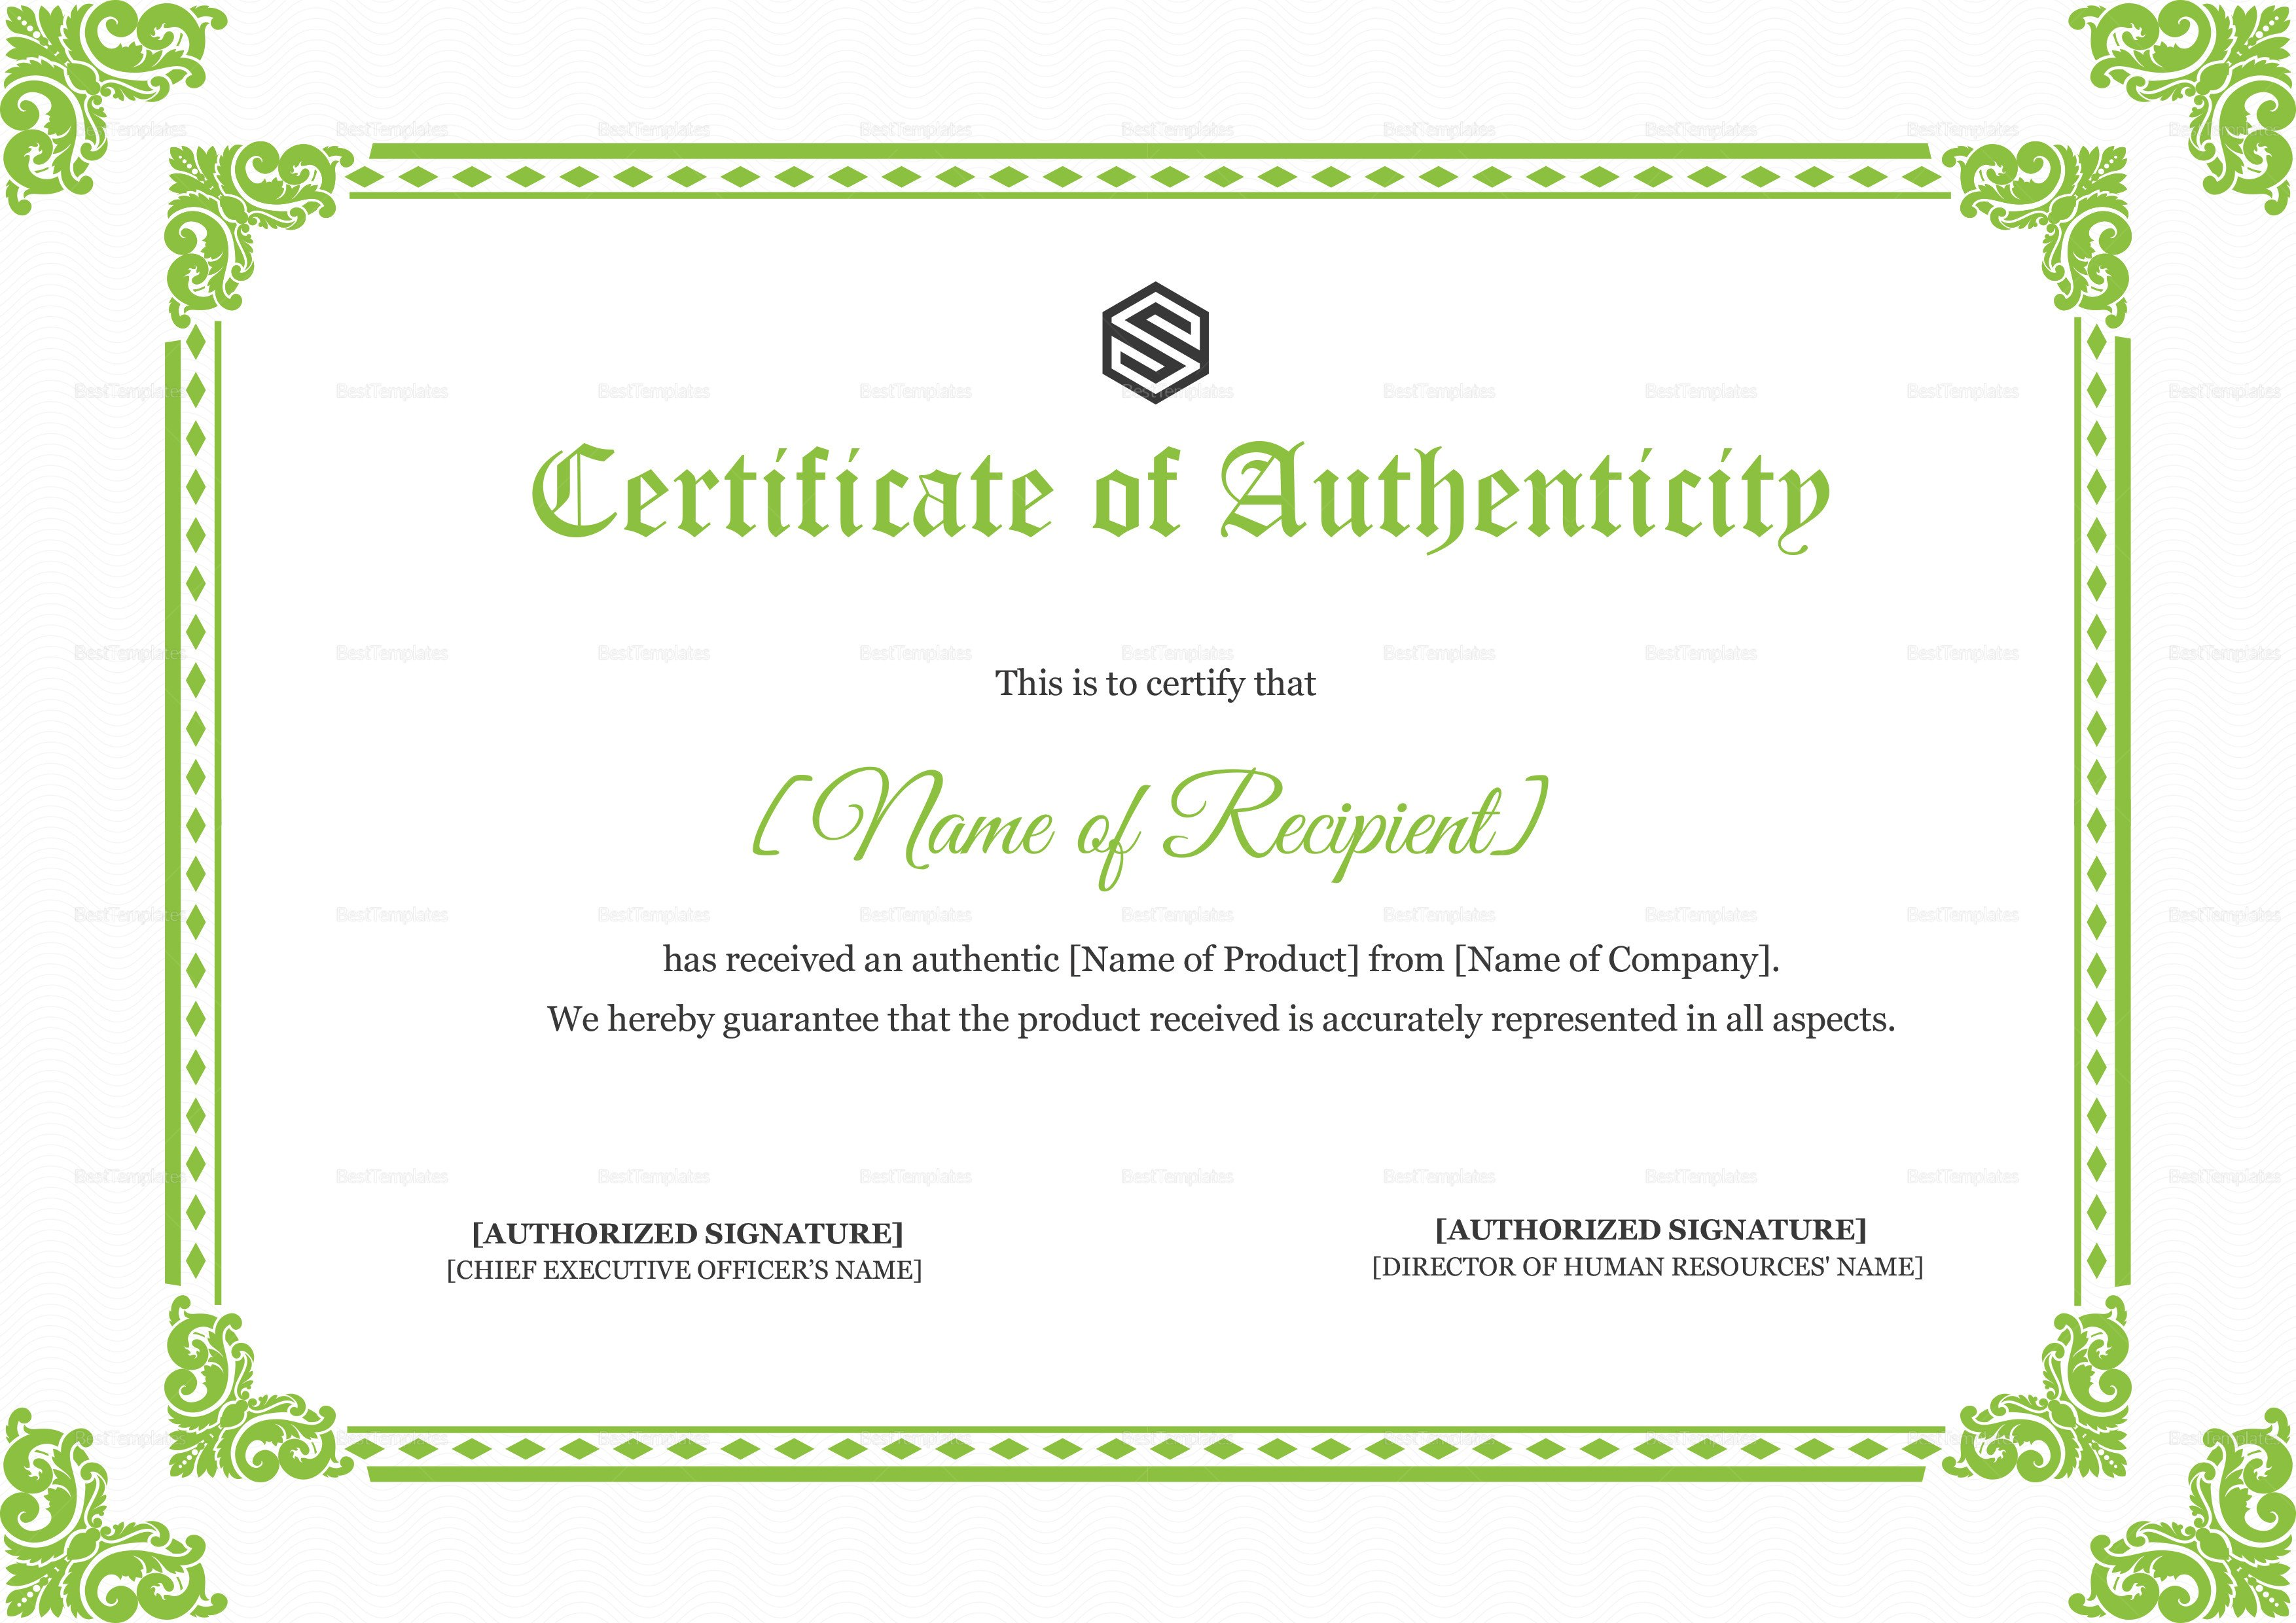 Certificate Of Authenticity Template Certificate Of Authenticity Design Template In Psd Word